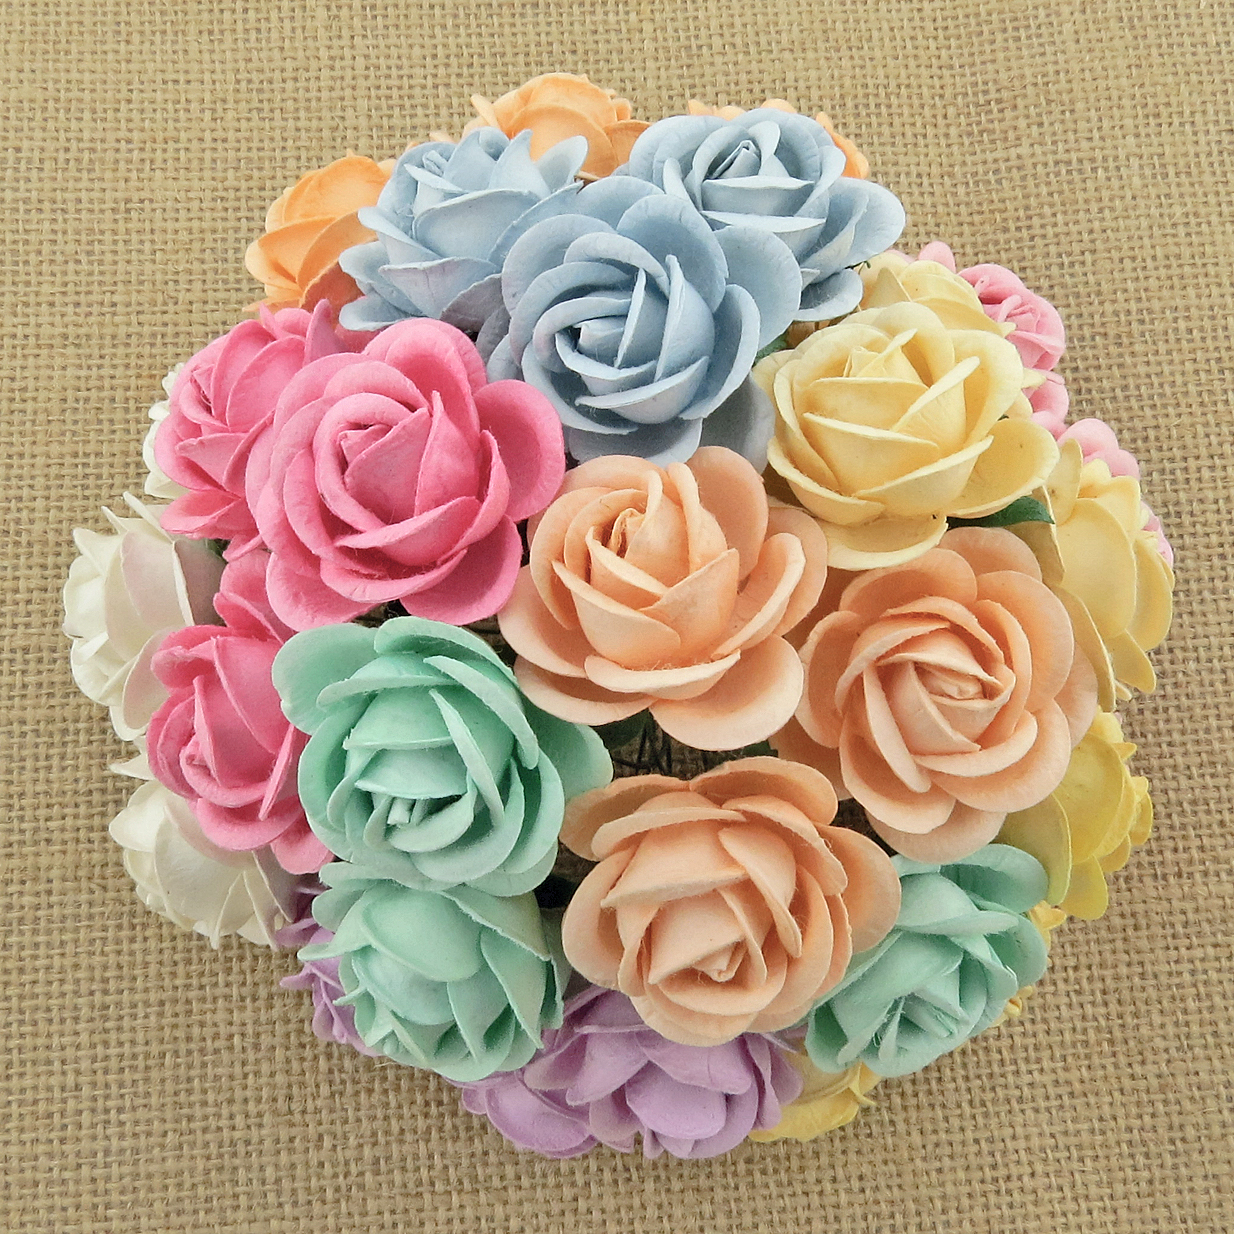 50 MIXED PASTEL MULBERRY PAPER CHELSEA ROSES